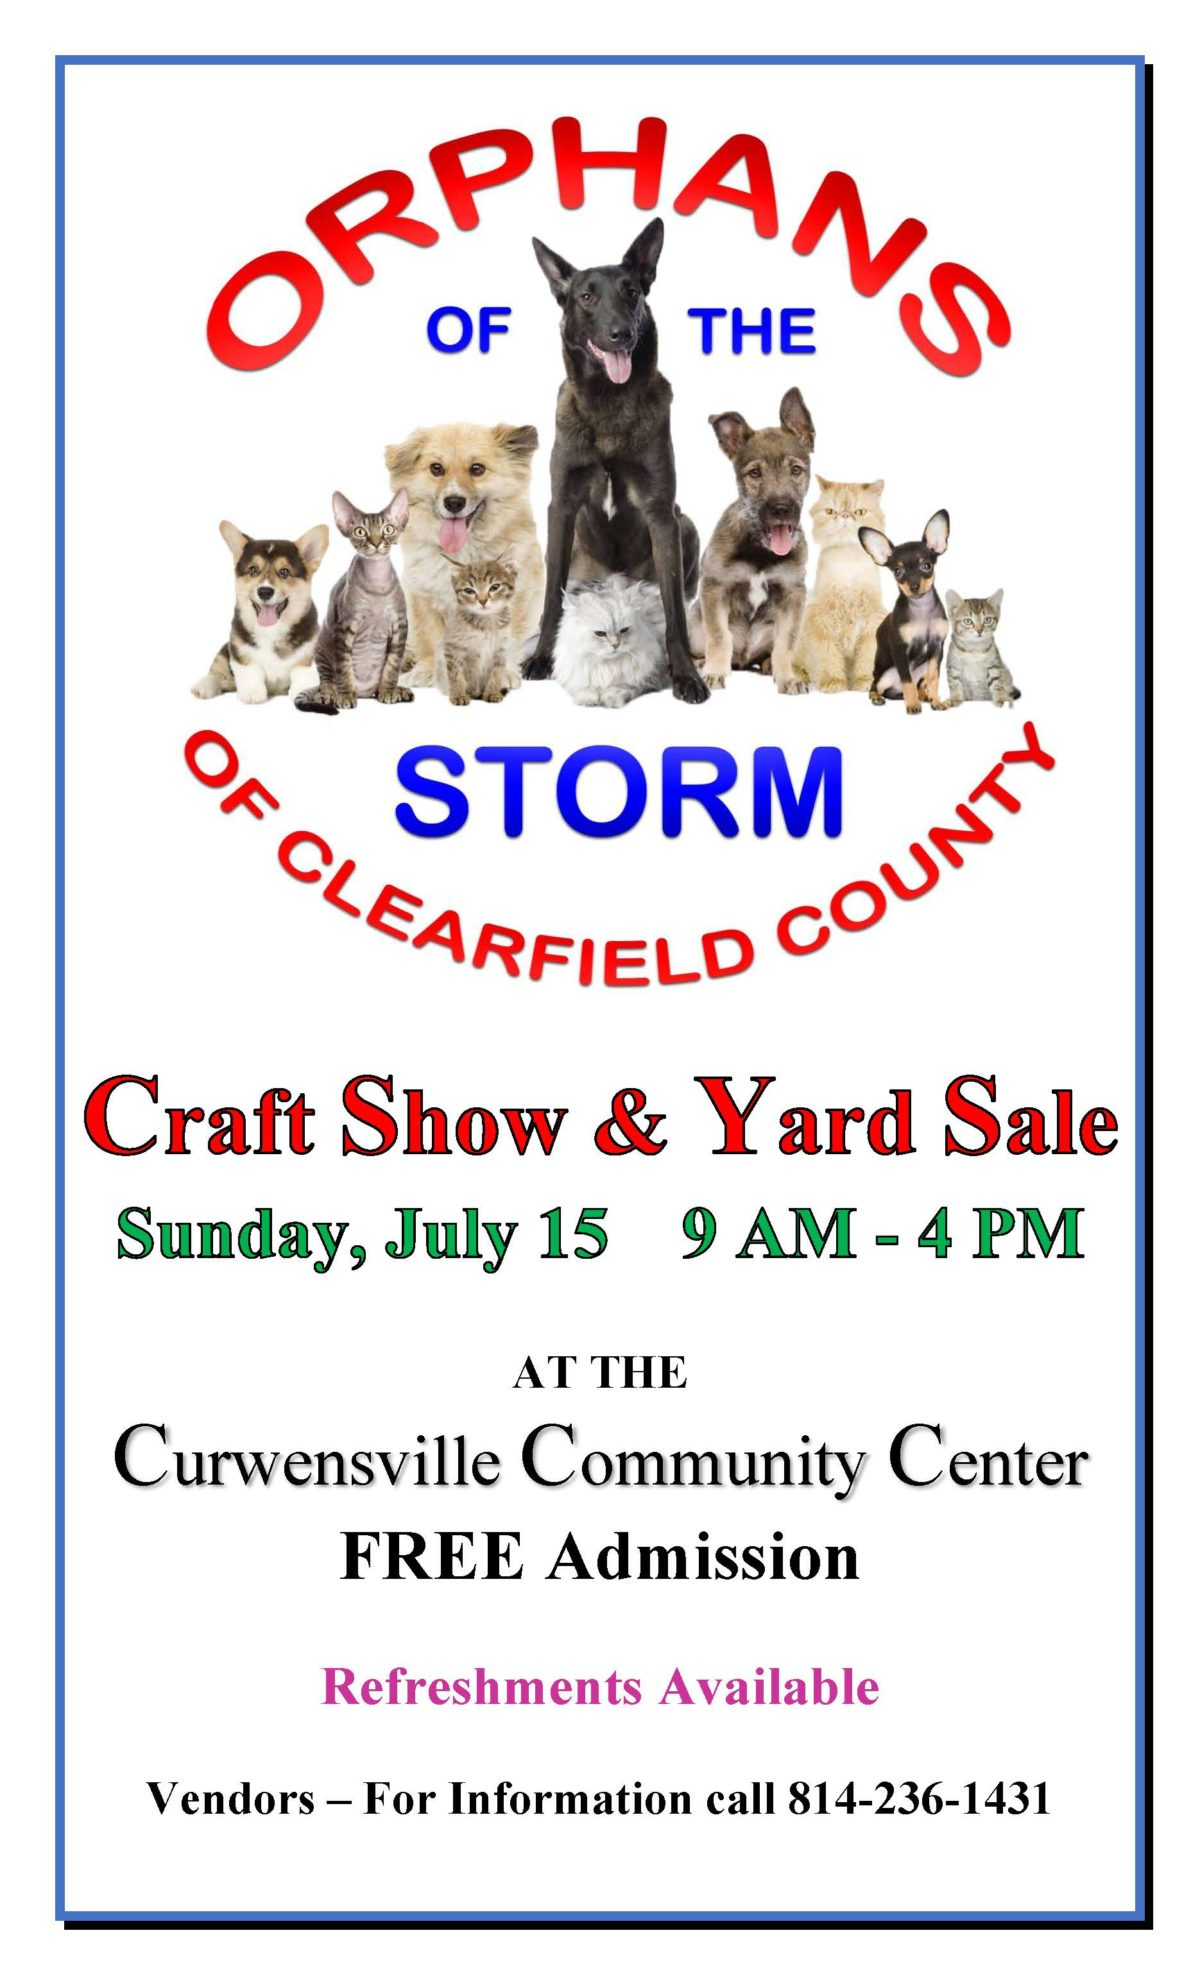 Clearfield County Orphans of the Storm Craft & Yard Sale